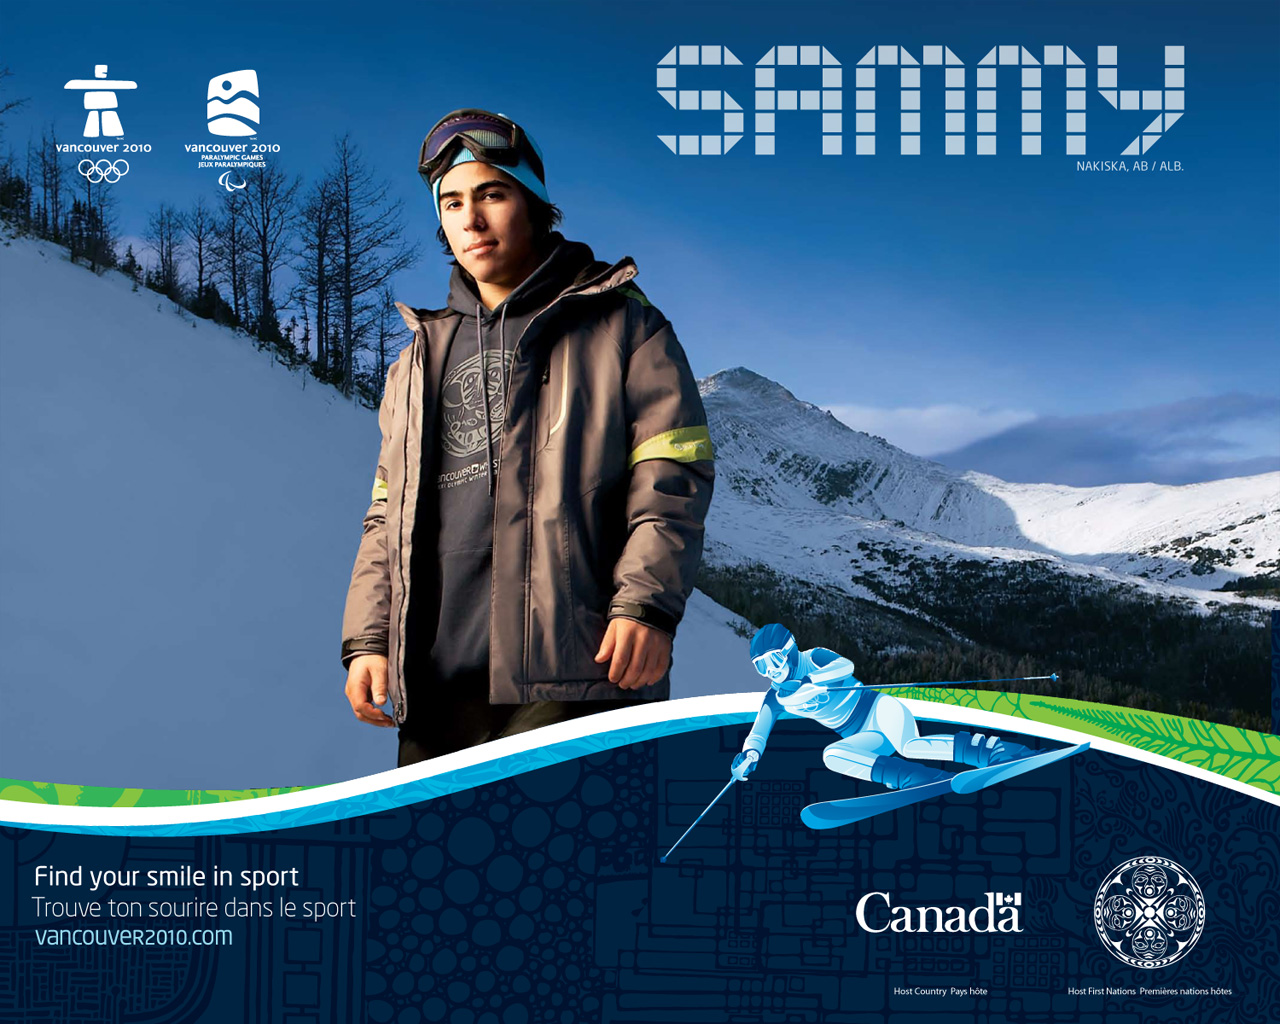 Free Vancouver 2010 Olympic Winter Games PowerPoint Background 12